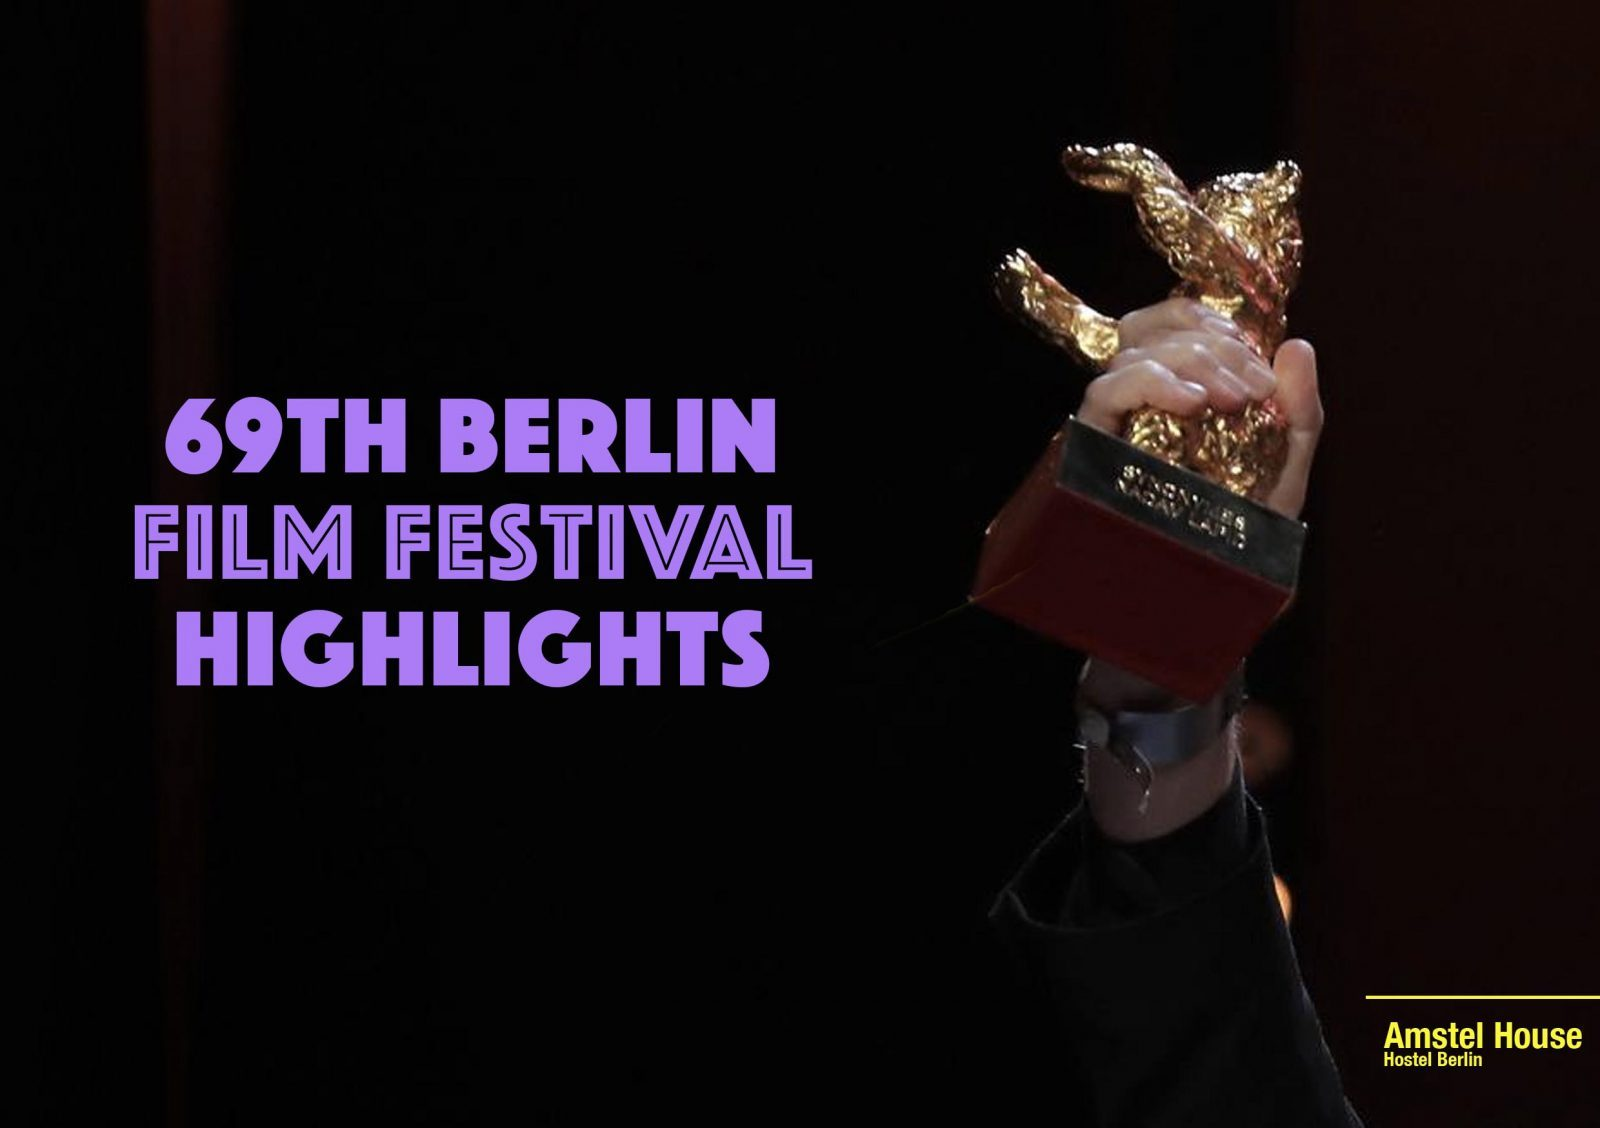 Berlinale highlights - Berlin Film Festival Winners